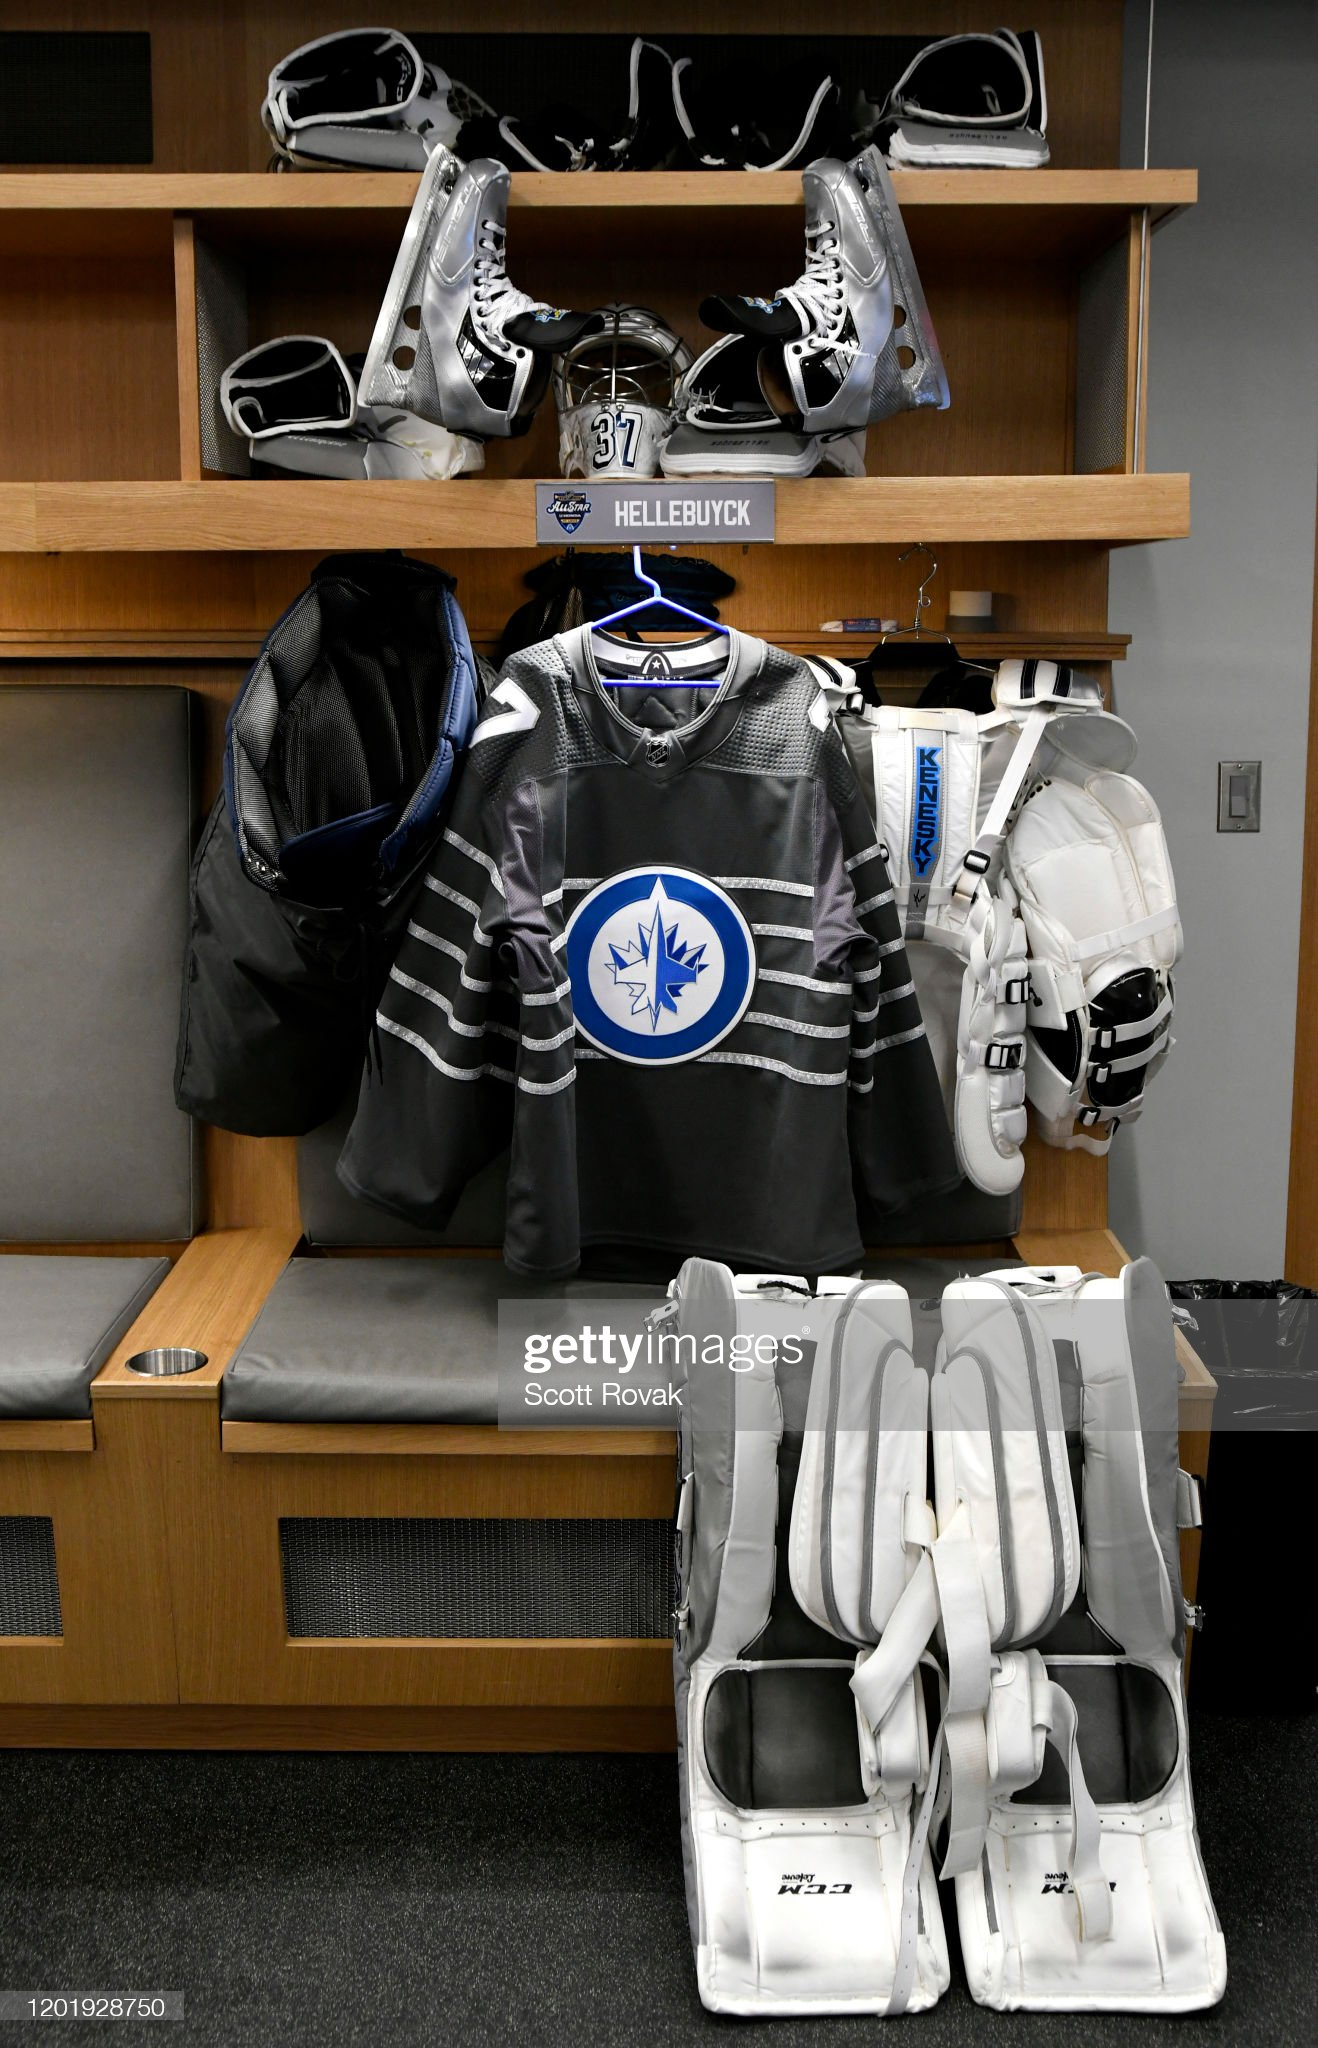 detailed-view-of-the-locker-room-stall-o